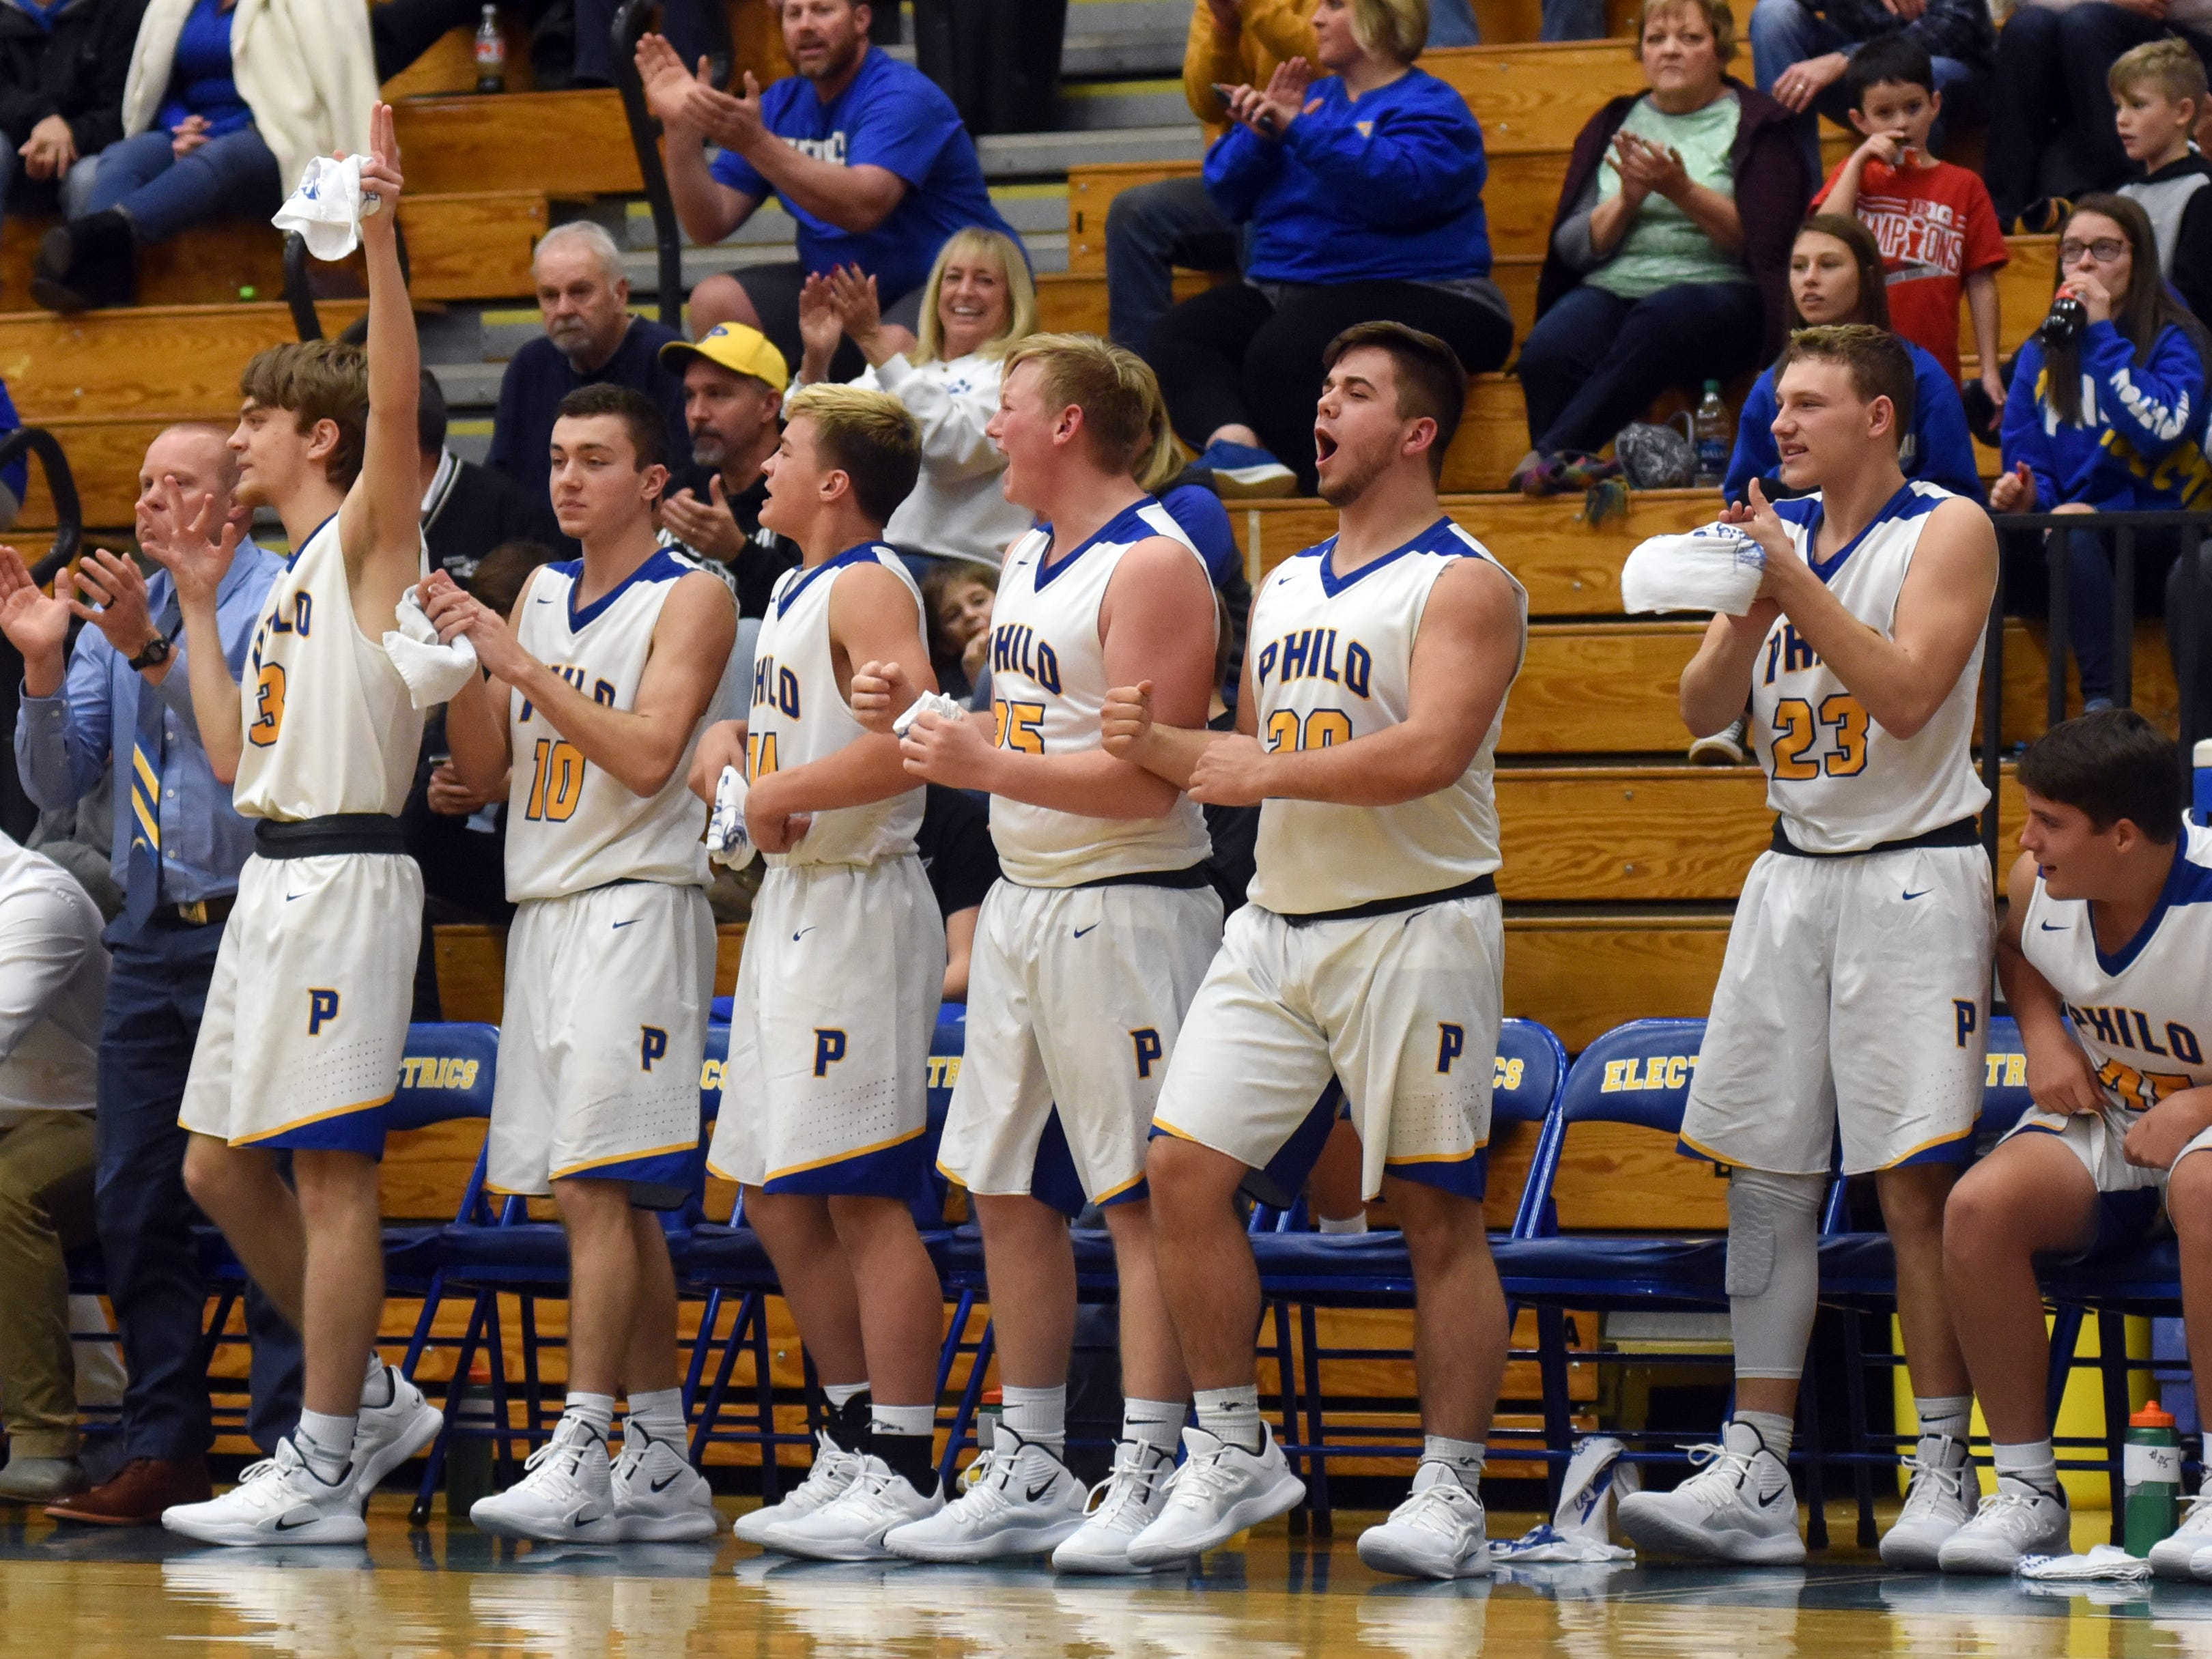 Philo's bench celebrates a basket against Sheridan.